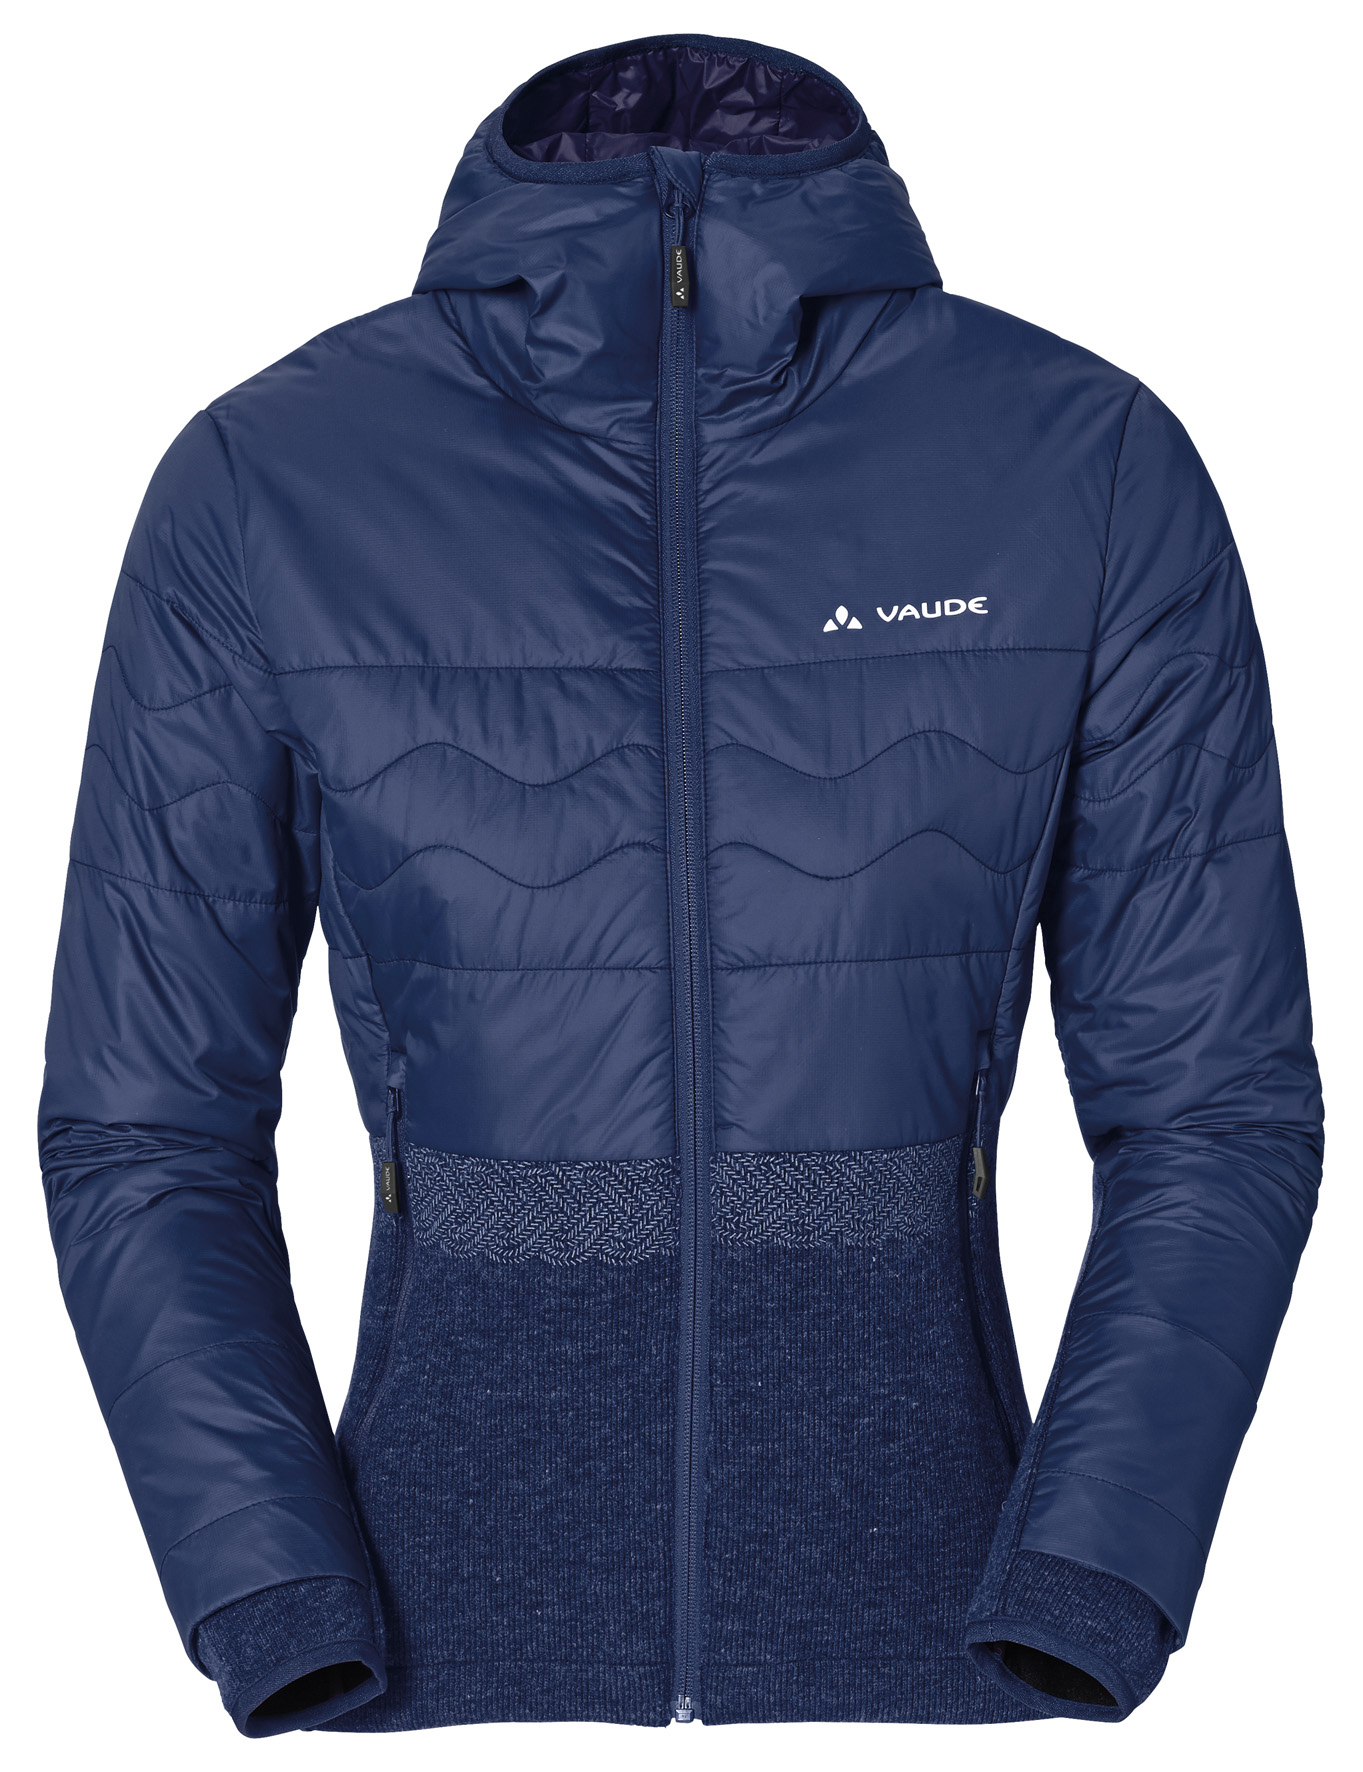 VAUDE Women´s Tirano Padded Jacket sailor blue Größe 36 - schneider-sports